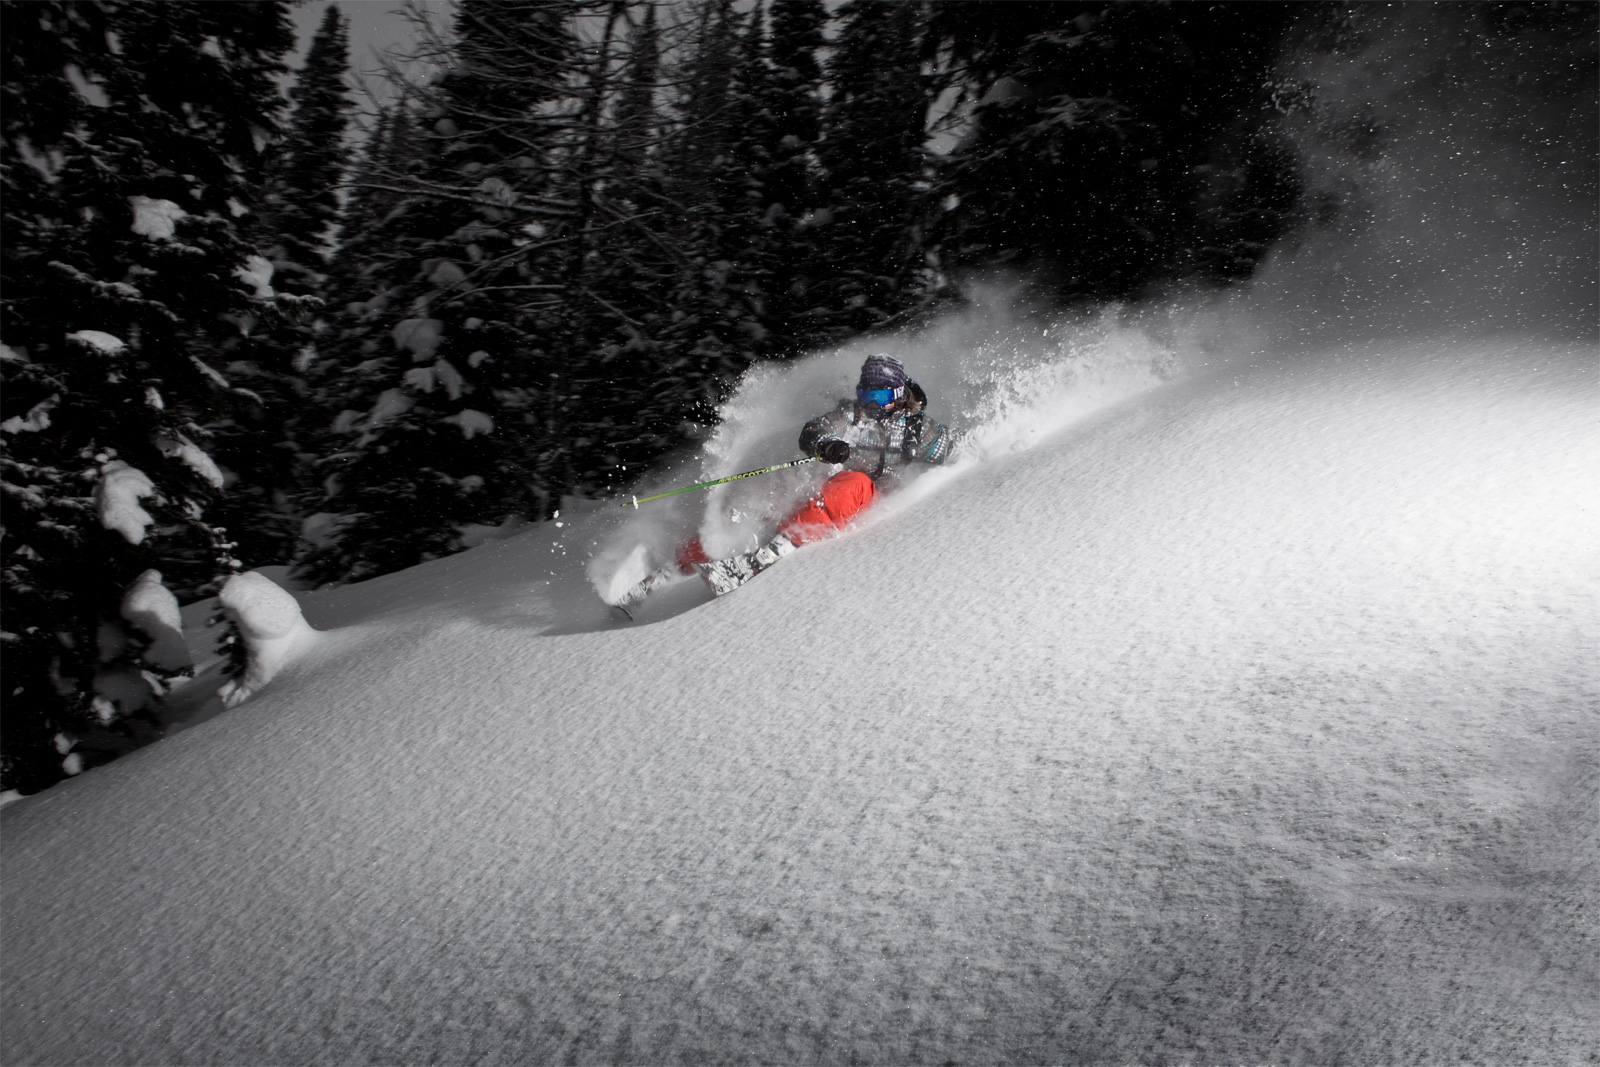 Skiing Wallpaper And Background Image